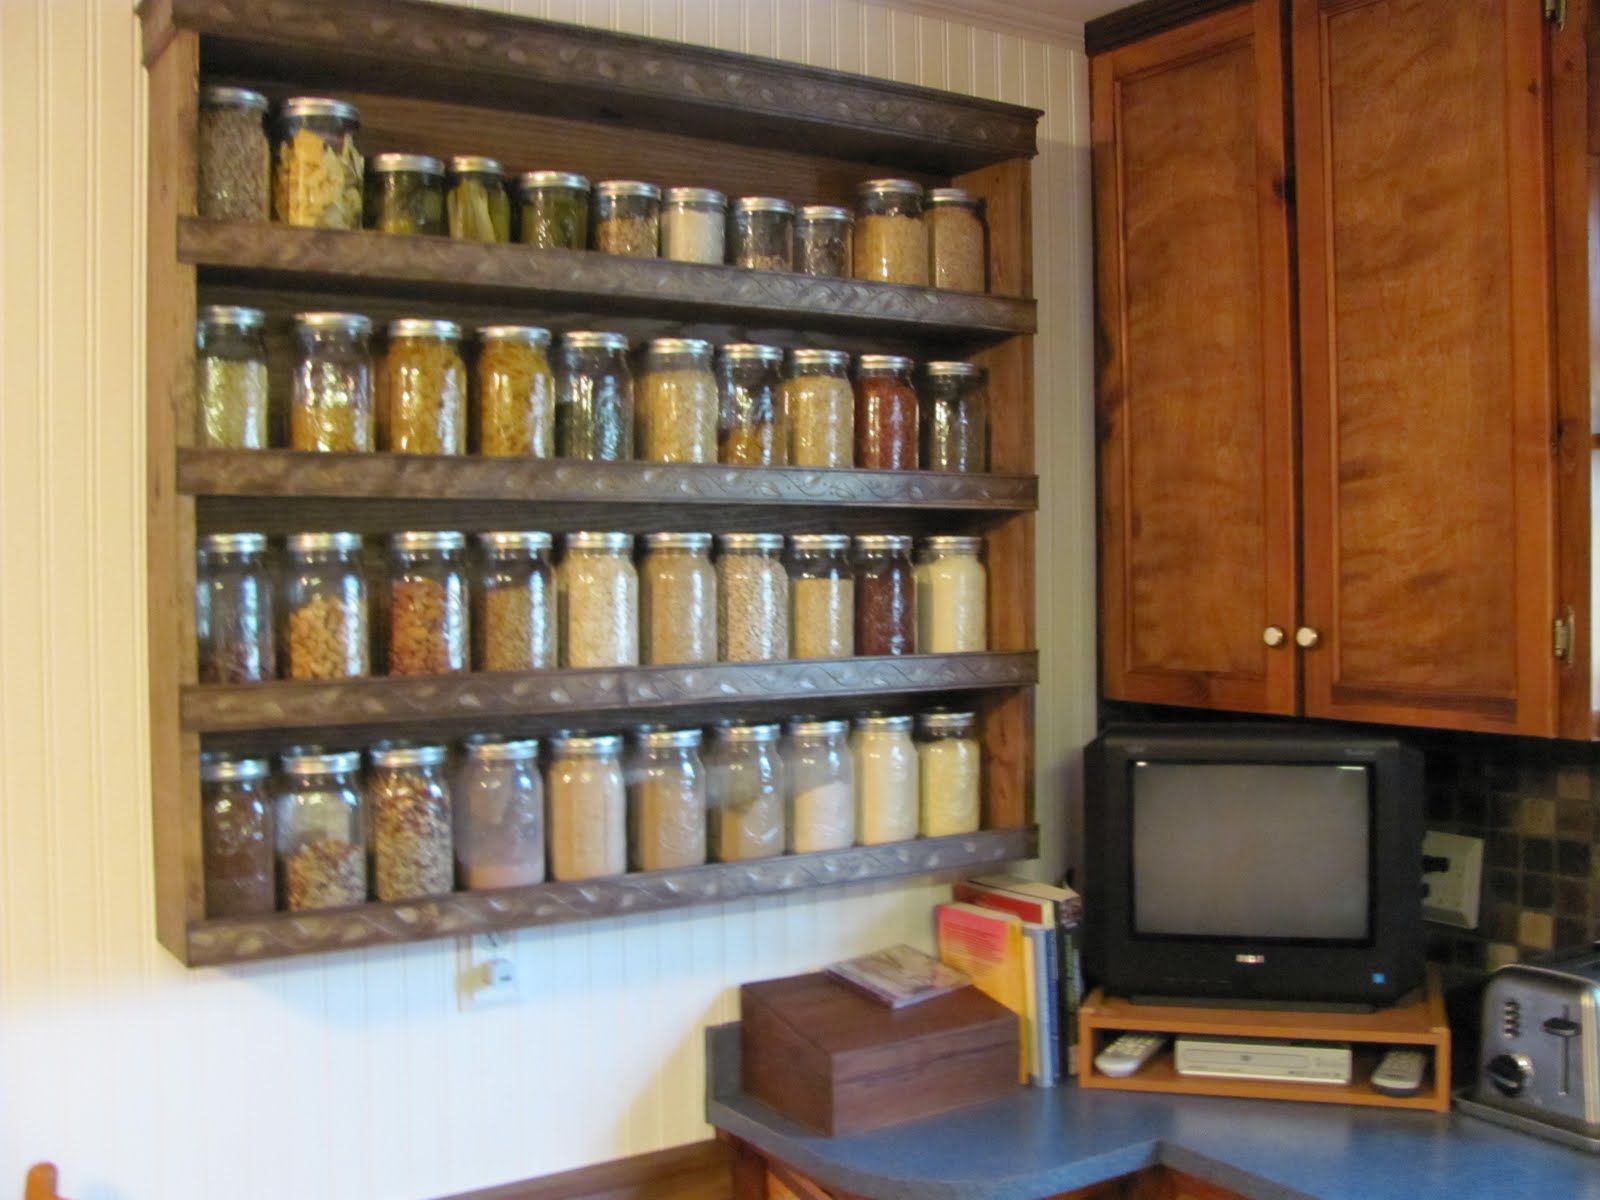 ideas containers cupboard shelves pull kitchen pinterest storage baskets cabinet out systems hard organizing